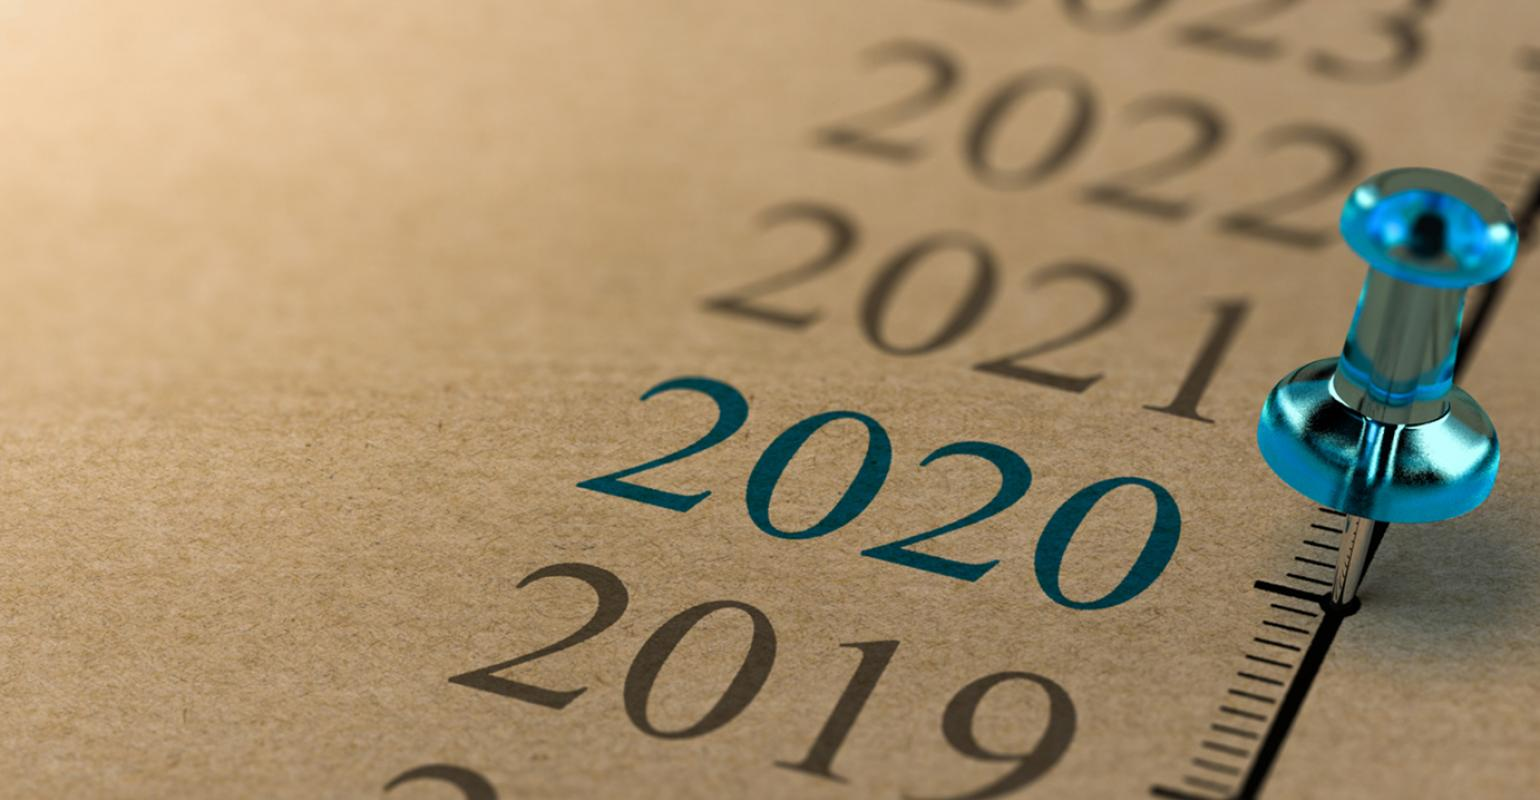 New Metal Releases 2020.Special Events Releases 2020 Event Planner Forecast